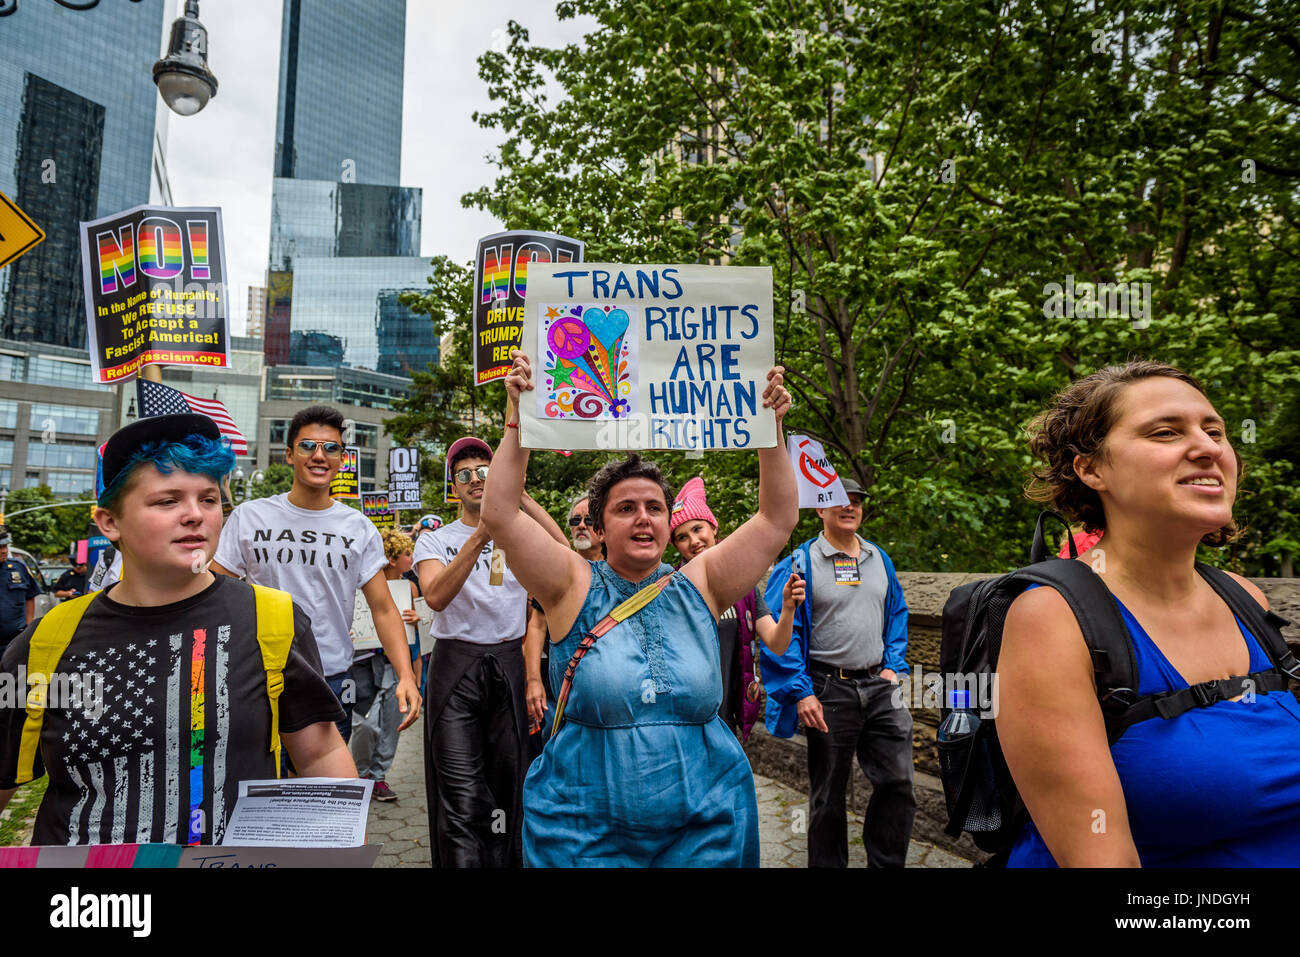 New York, United States. 29th July, 2017. A group of New Yorkers gathered at Columbus Circle across the Trump International Stock Photo